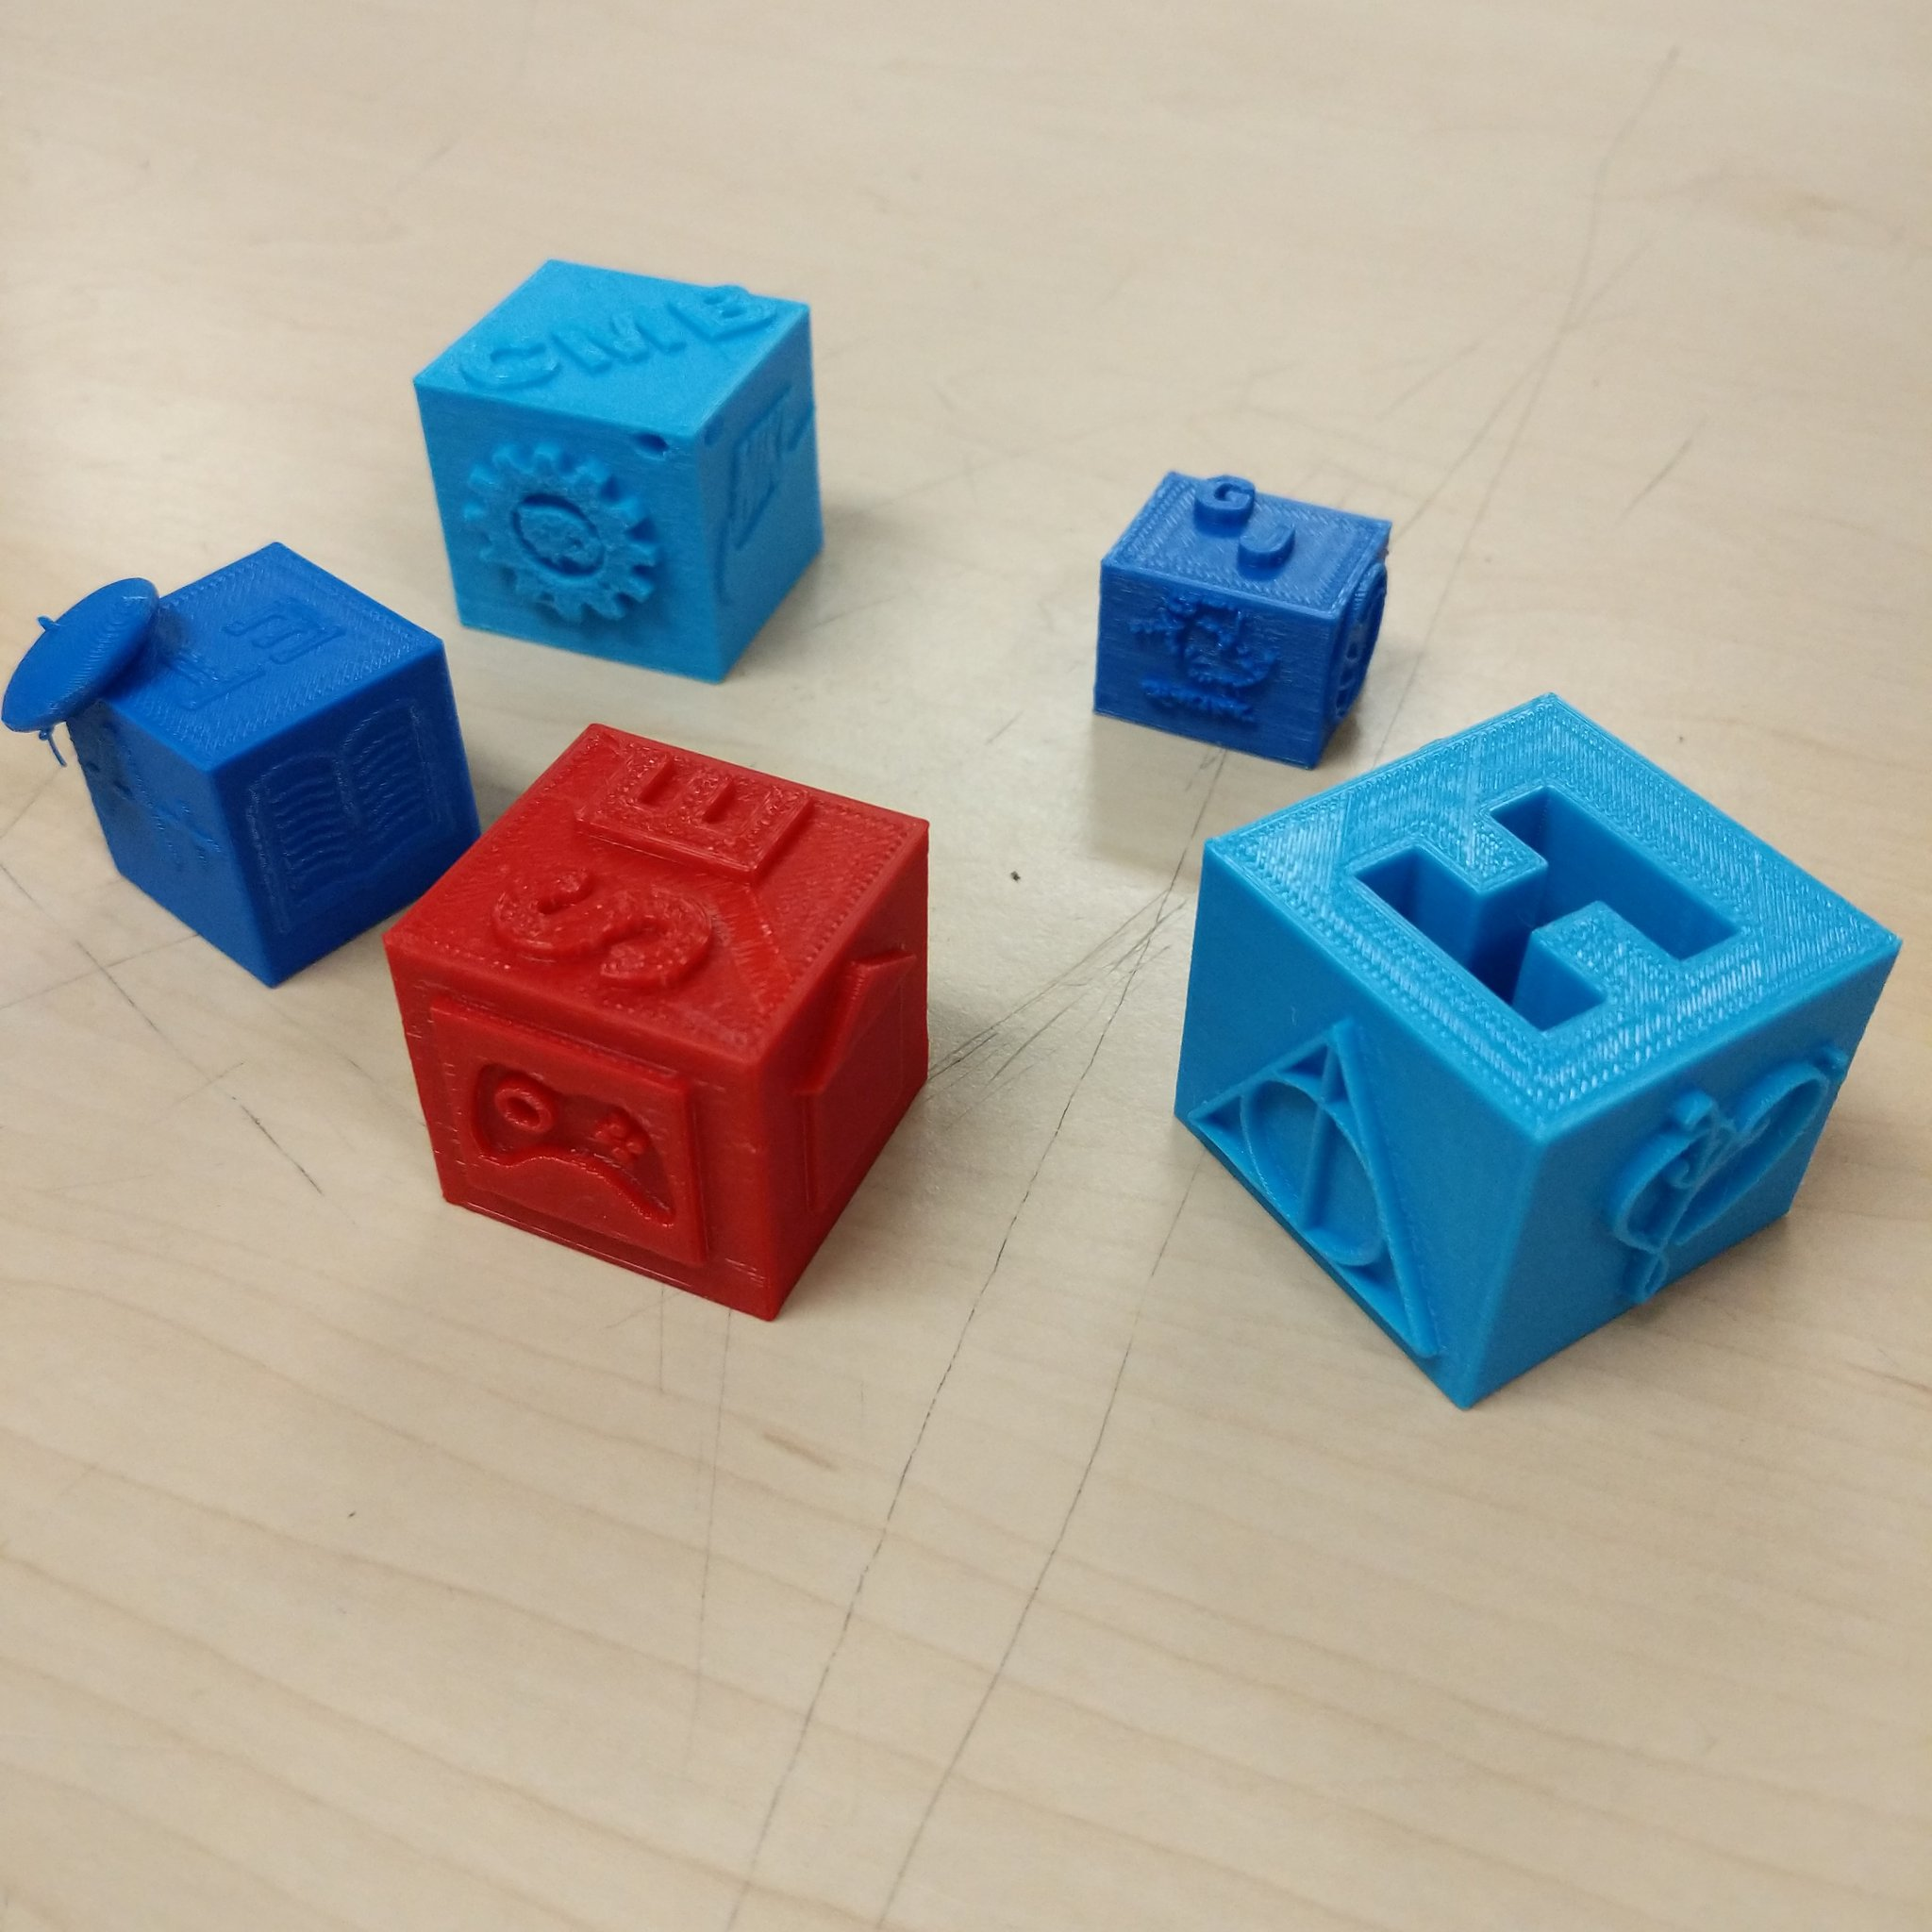 Some nice examples of our 'Cubes of Relevance' students have designed using @tinkercad. #3dprinting #steamlearns #makered #makerspace https://t.co/fCS2E9AcYA